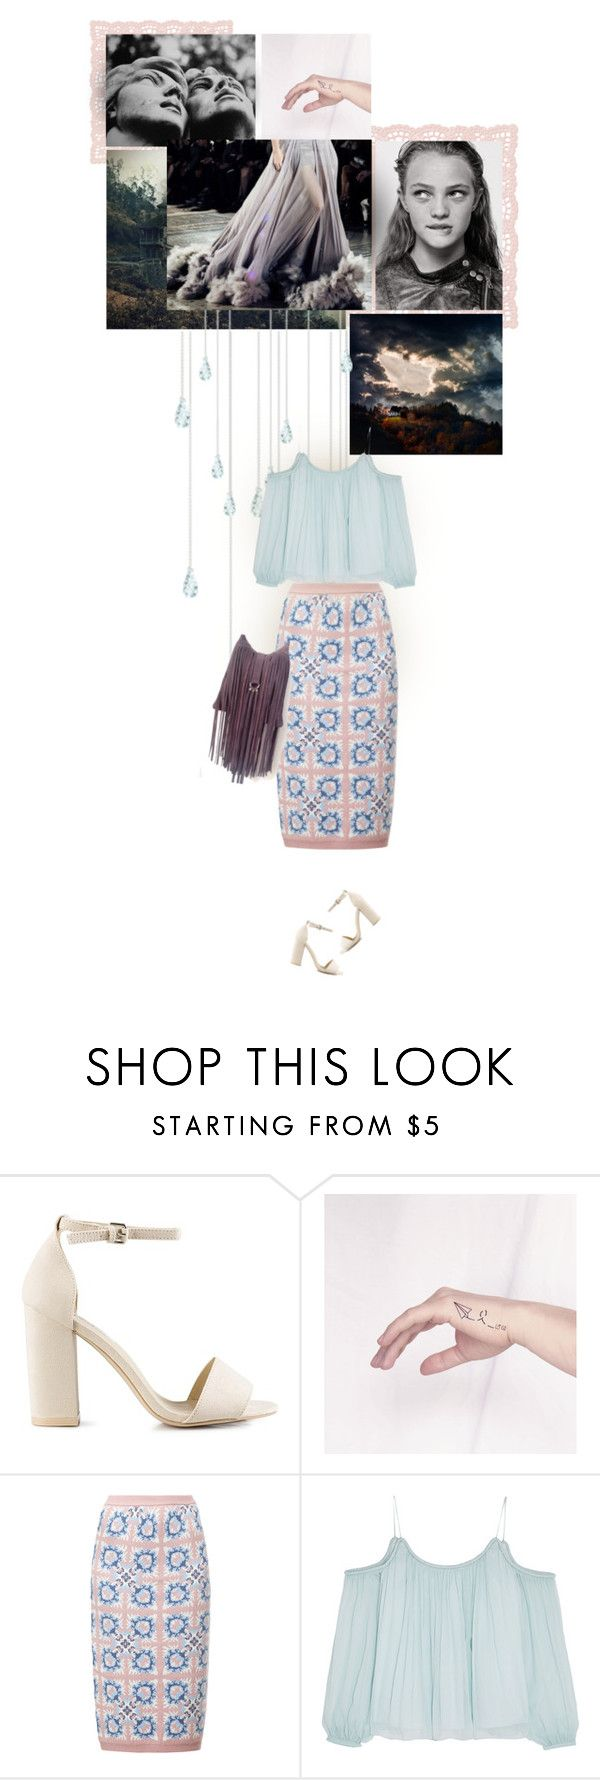 """rainfall"" by pinkpitahaya ❤ liked on Polyvore featuring Nly Shoes, Tak.Ori and Elizabeth and James"